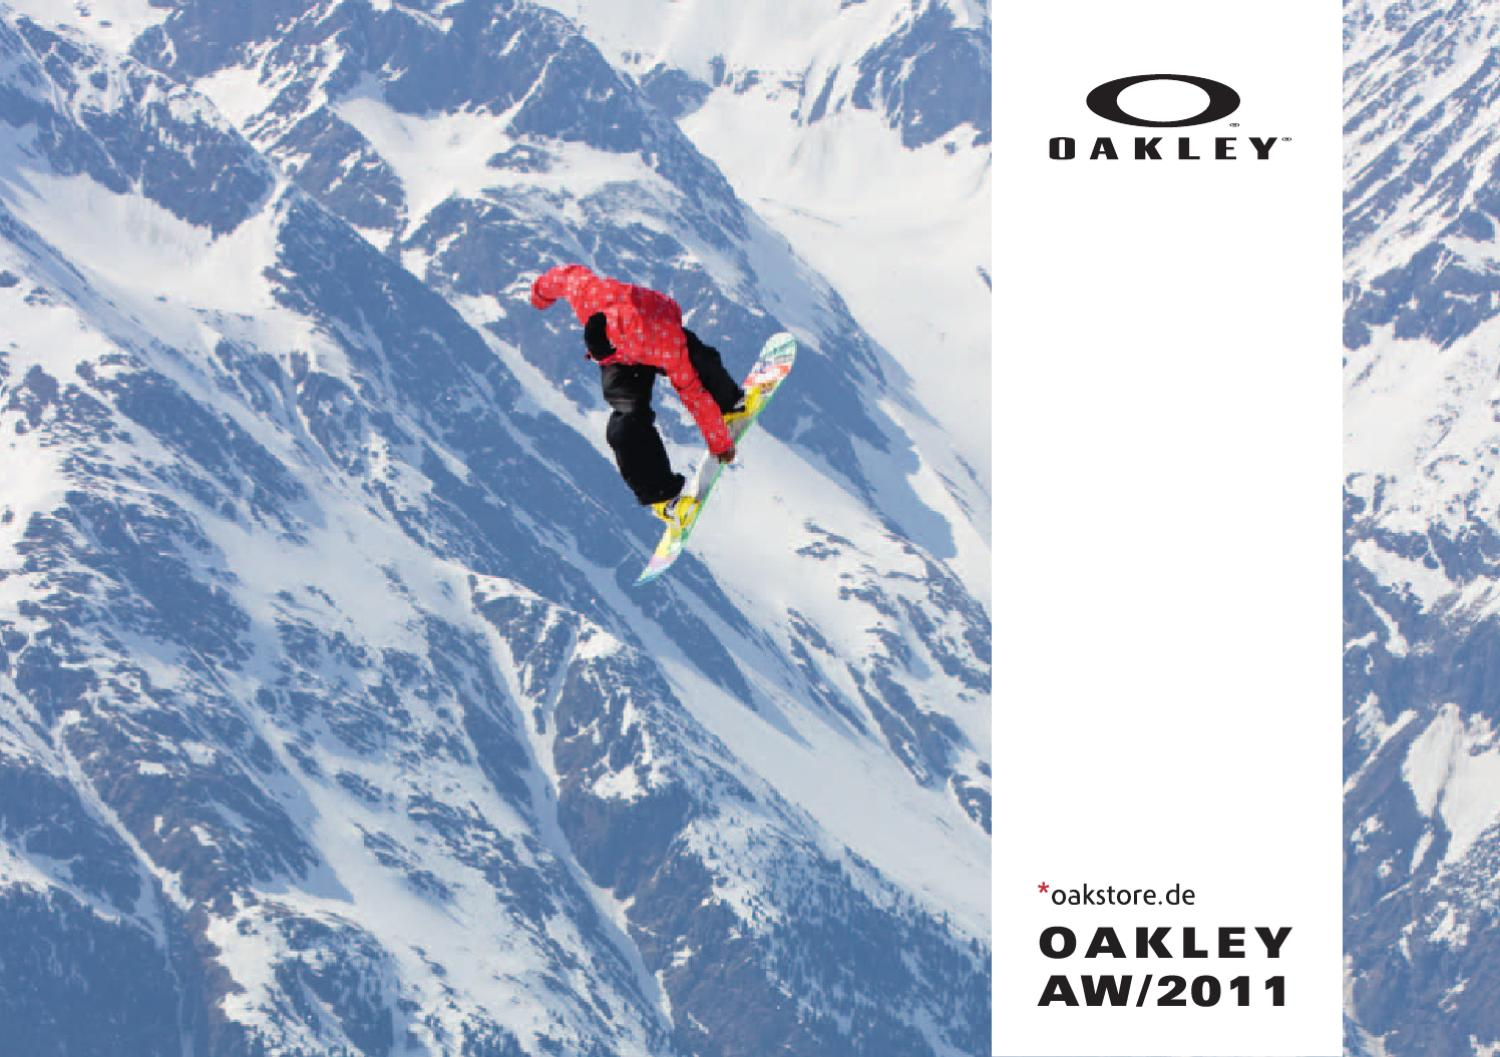 oakley winter  Oakley Catalog Winter 2010 - 2011 presented by Oakstore.de by 4ego ...